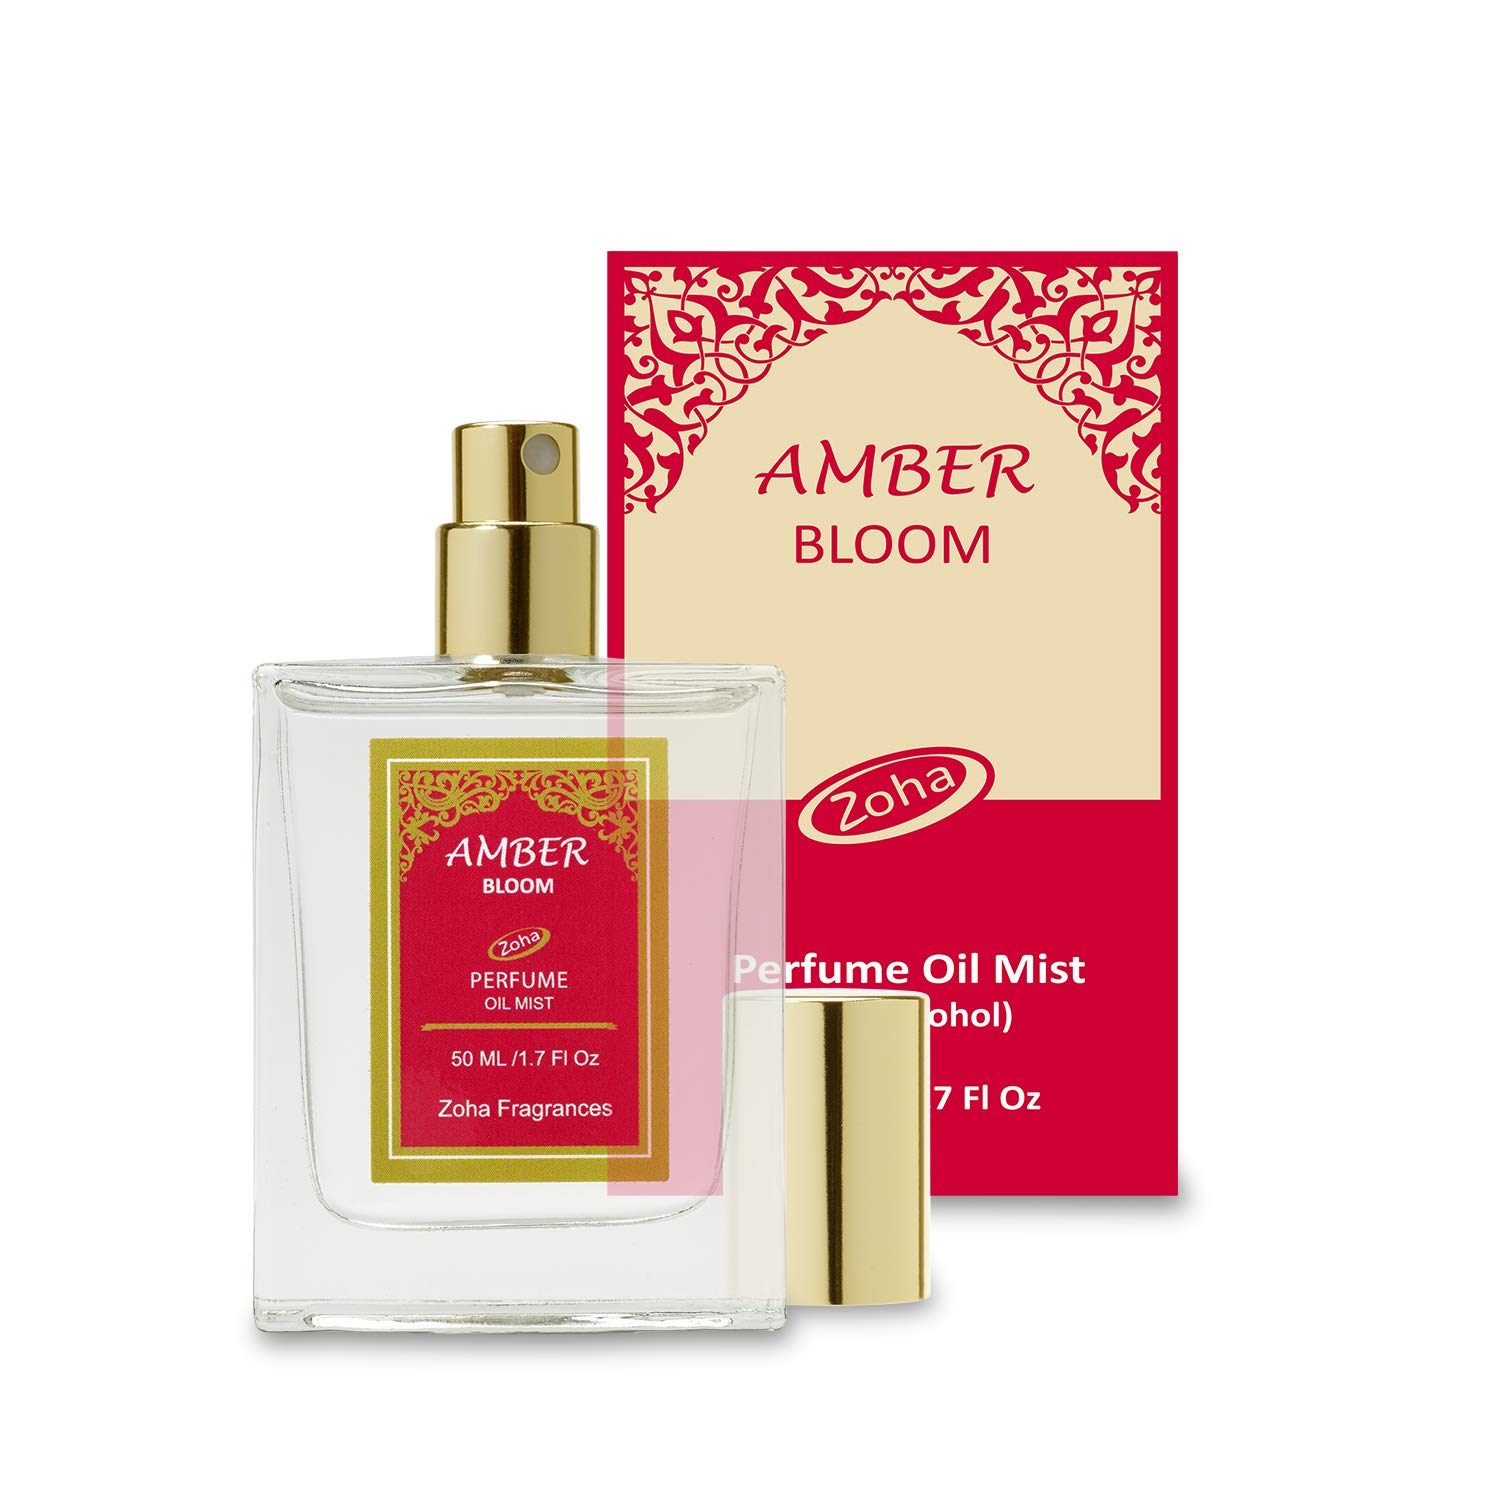 Amber Bloom Perfume Oil Mist (No Alcohol) Amber Oil Fragrance - Essential Oils and Perfumes for Women and Men by Zoha Fragrances, 50 ml / 1.7 fl Oz